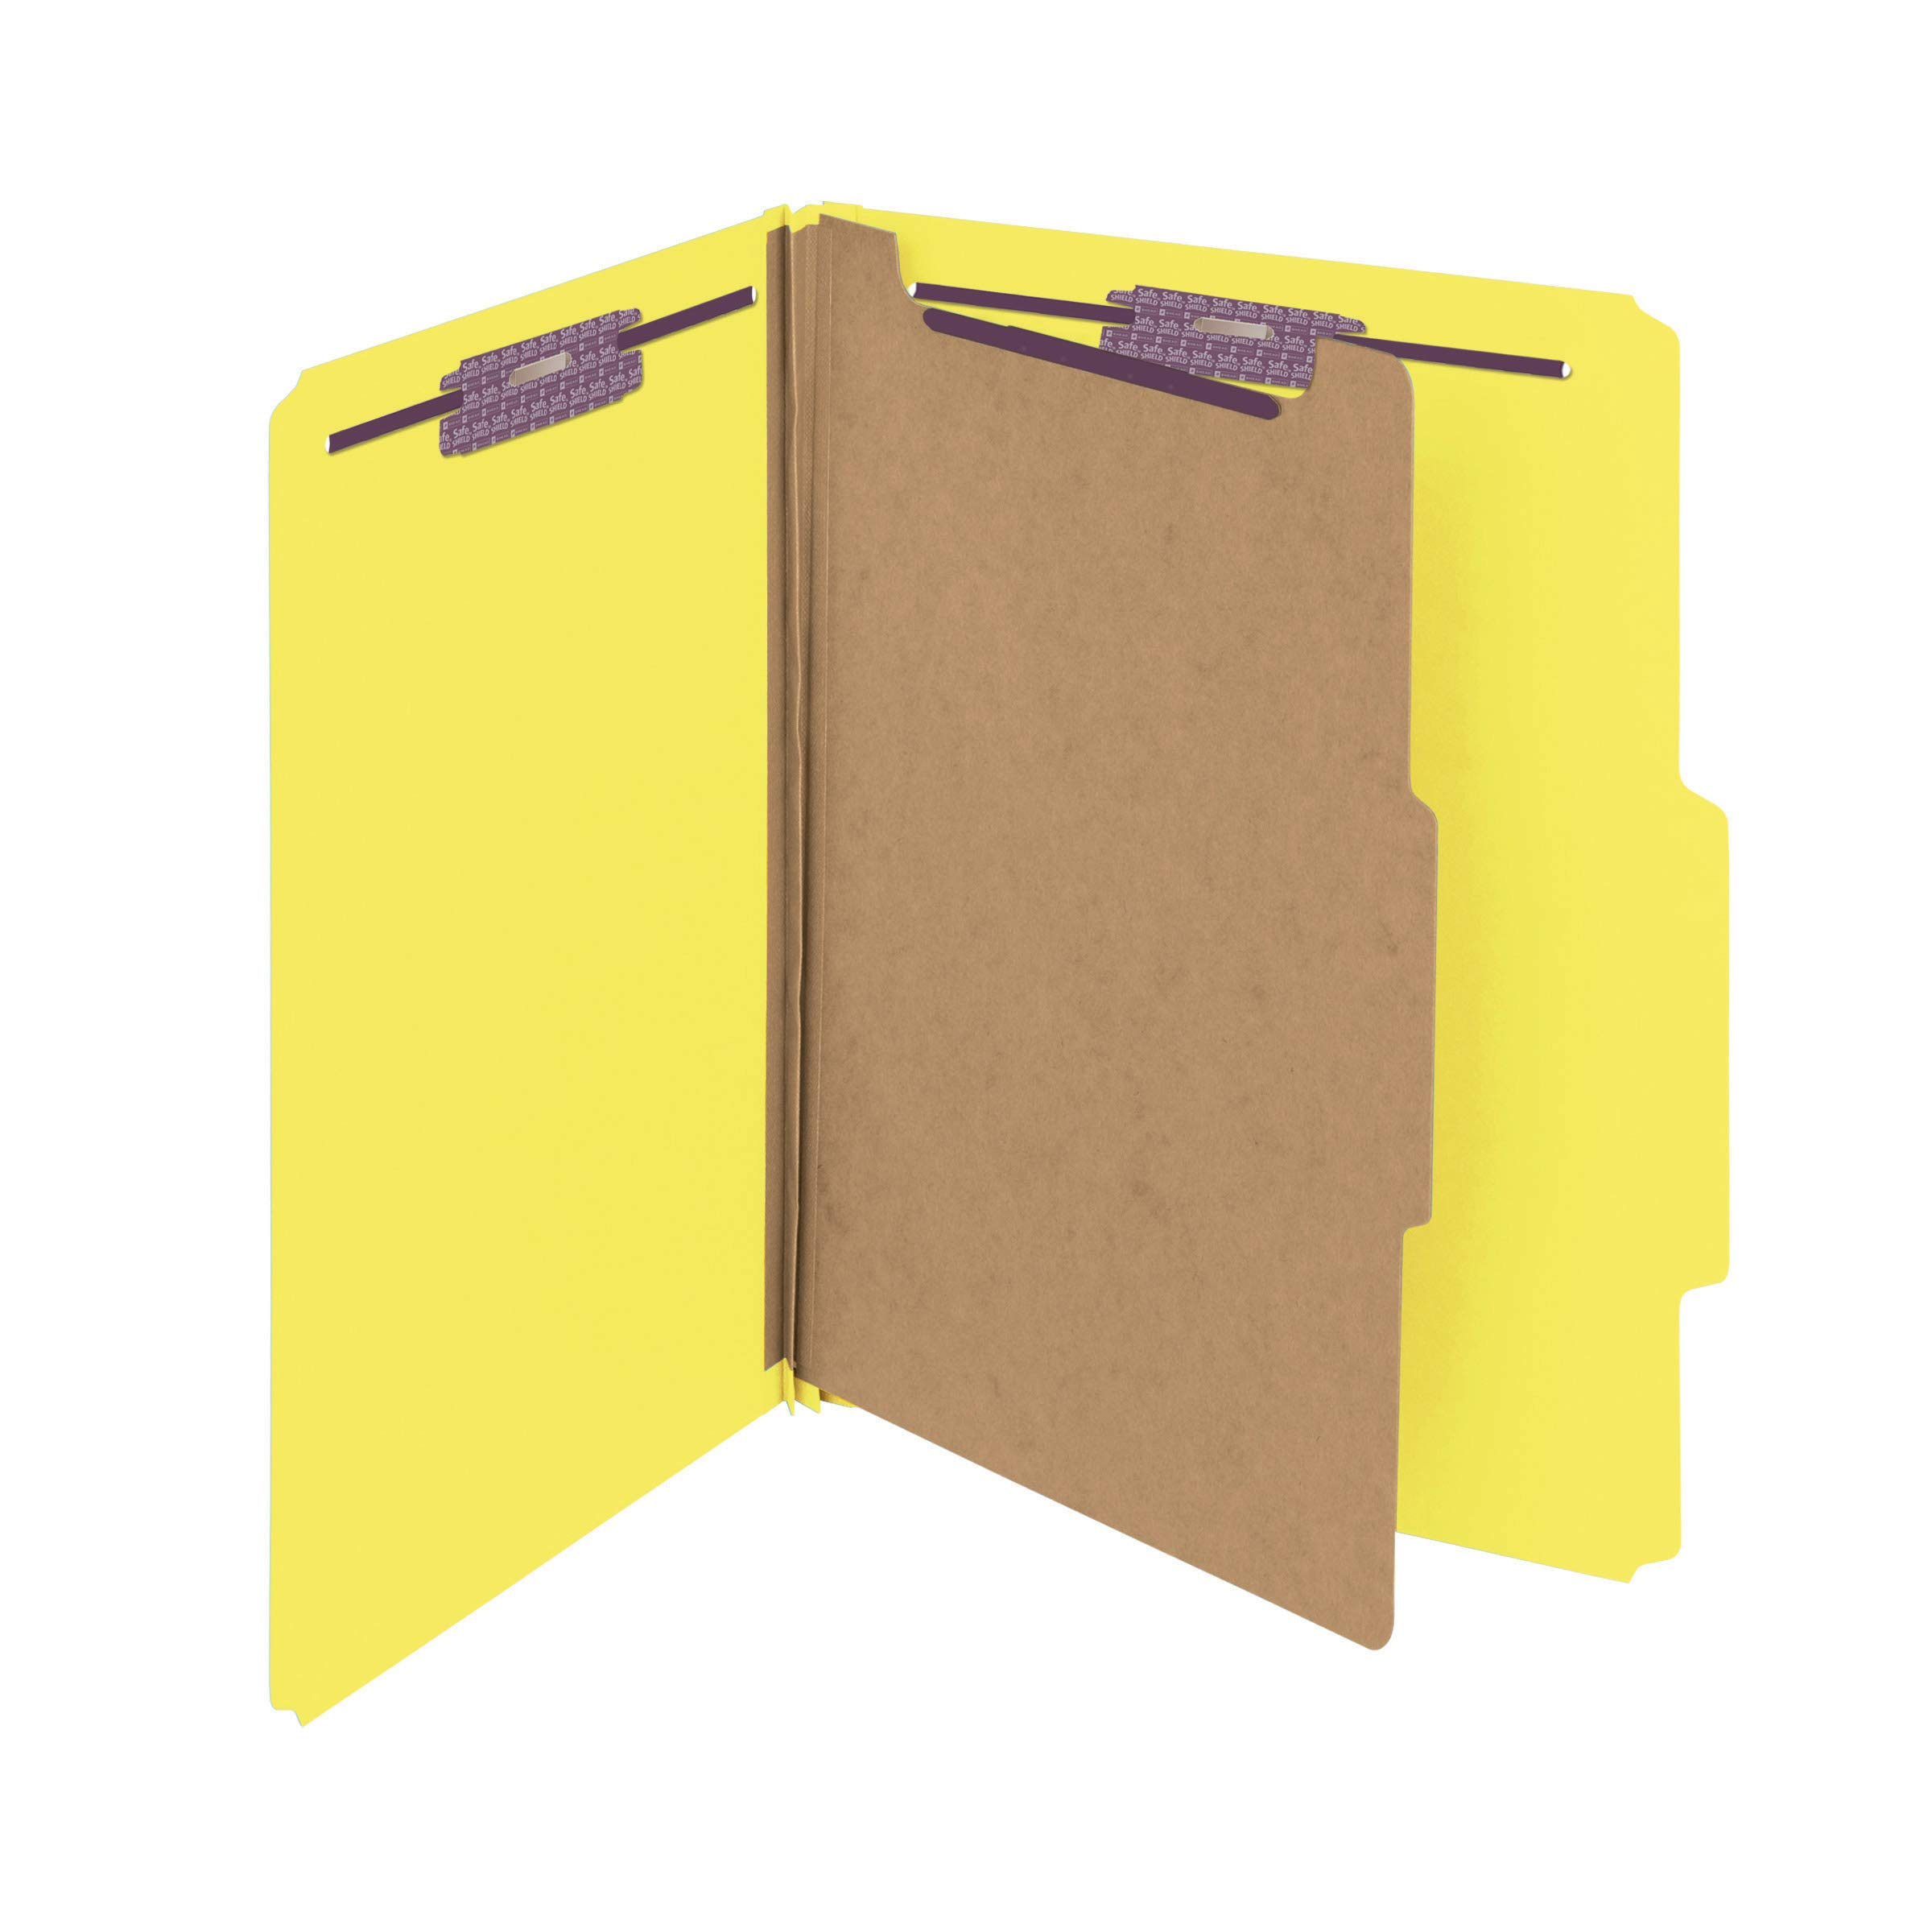 Smead Pressboard Classification File Folder with SafeSHIELD Fasteners, 1 Divider, 2'' Expansion, Letter Size, Yellow, 10 per Box (13734)